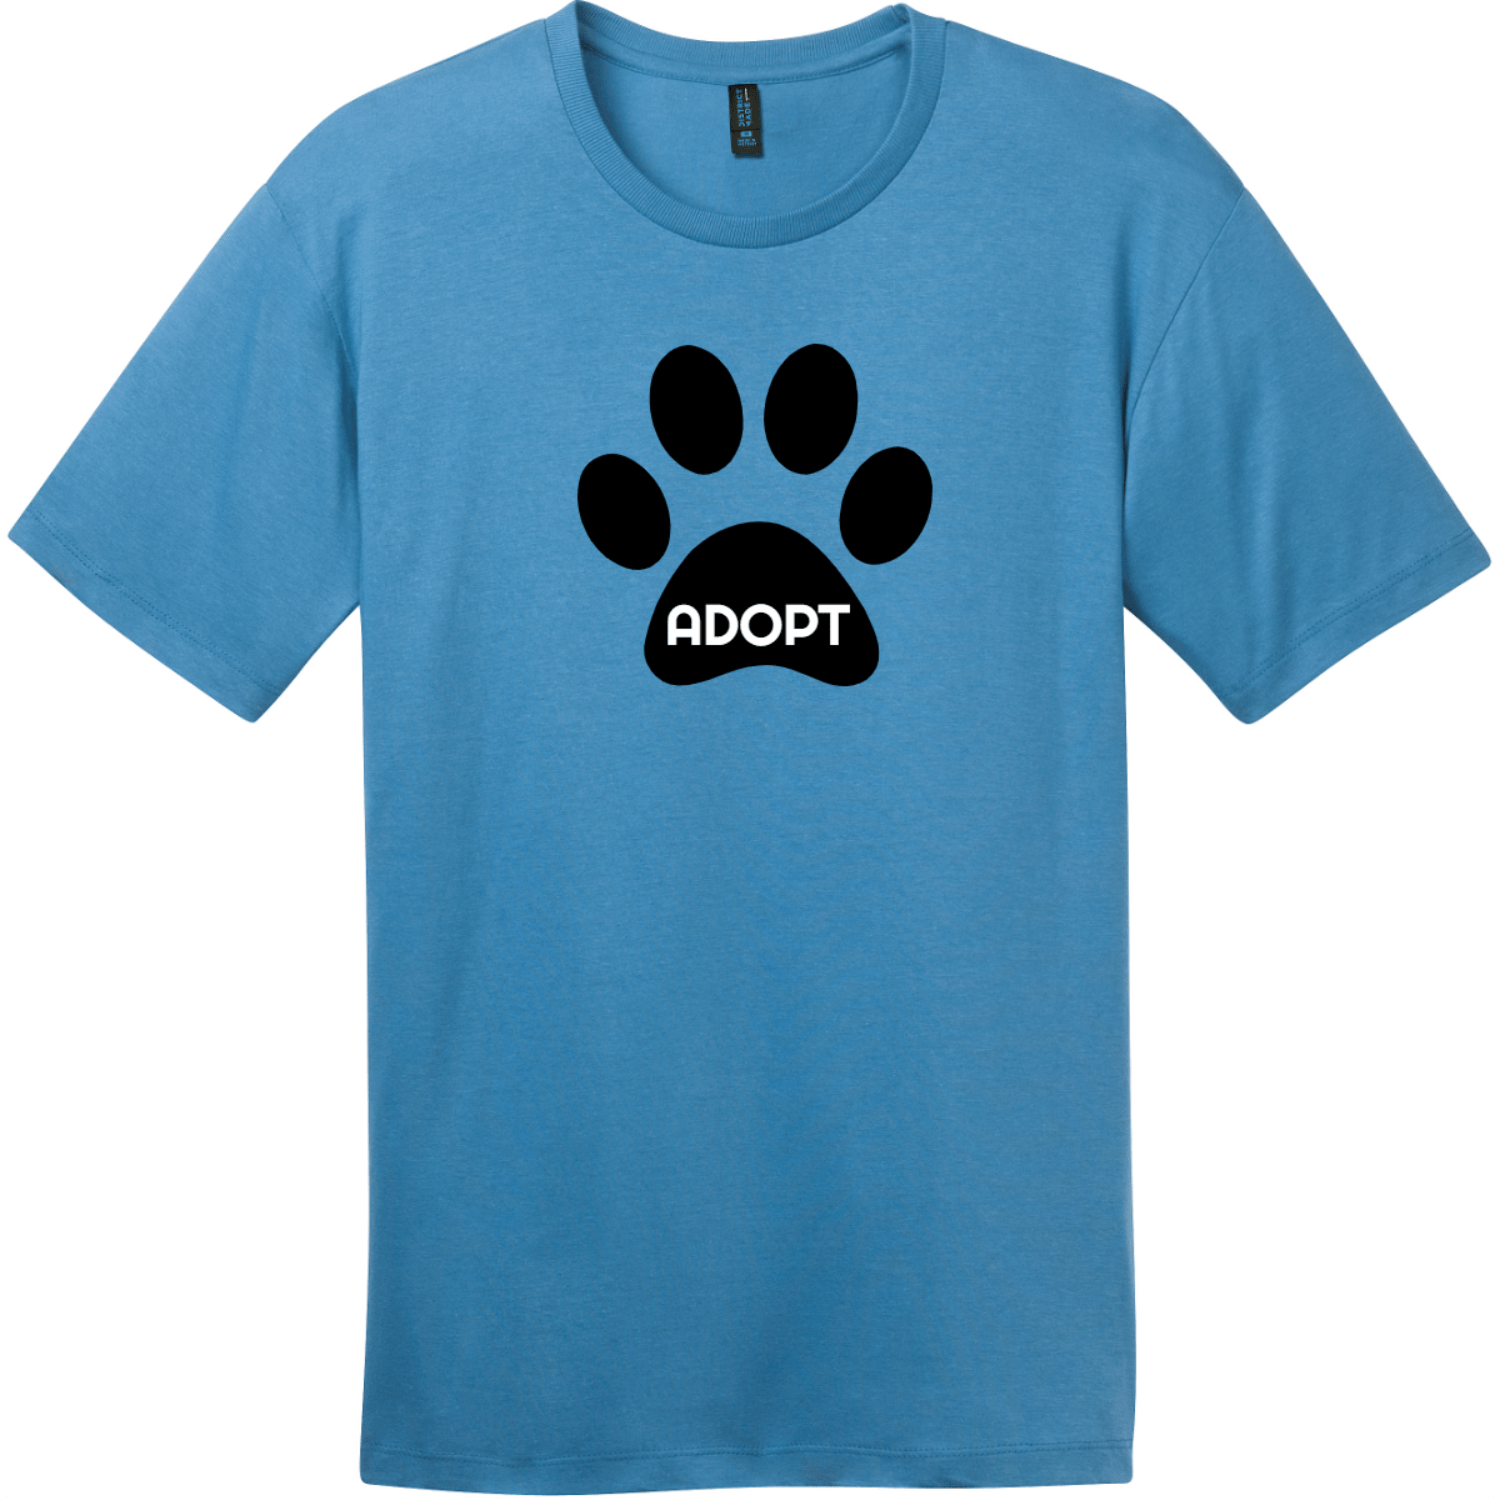 Adopt Pet Paw T-Shirt Clean Denim District Perfect Weight Tee DT104